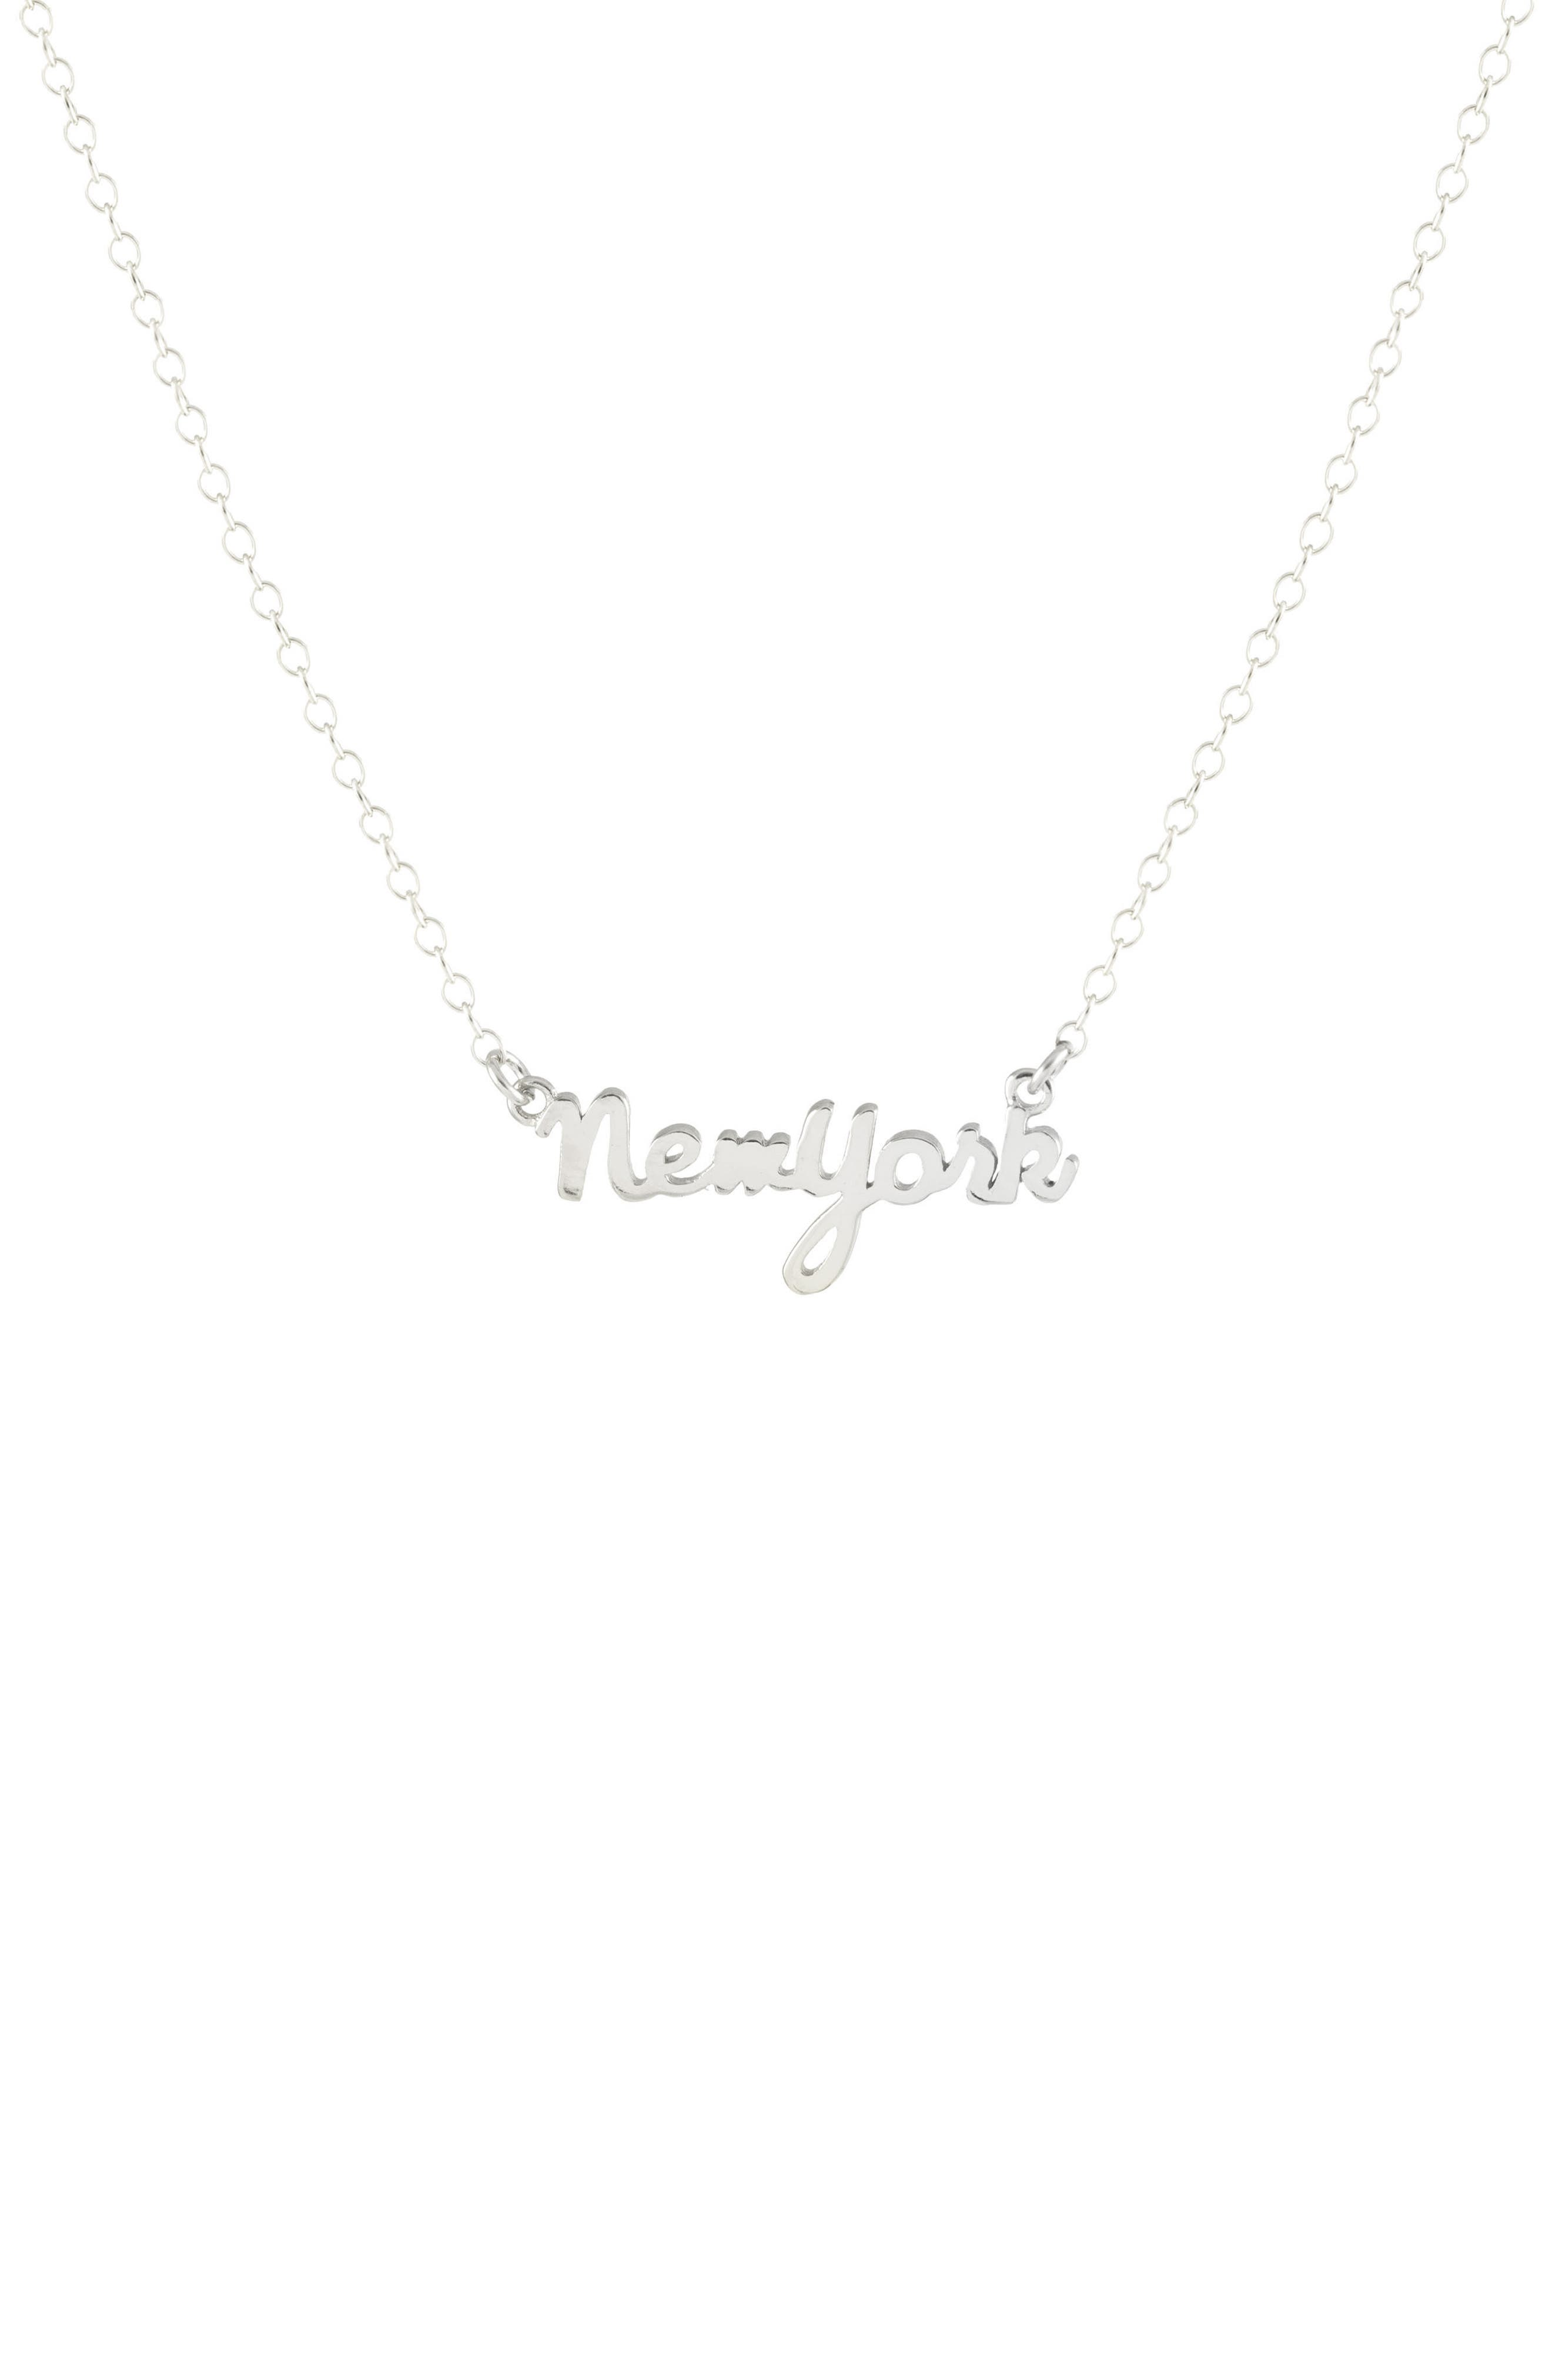 Main Image - Kris Nations State Script Charm Necklace